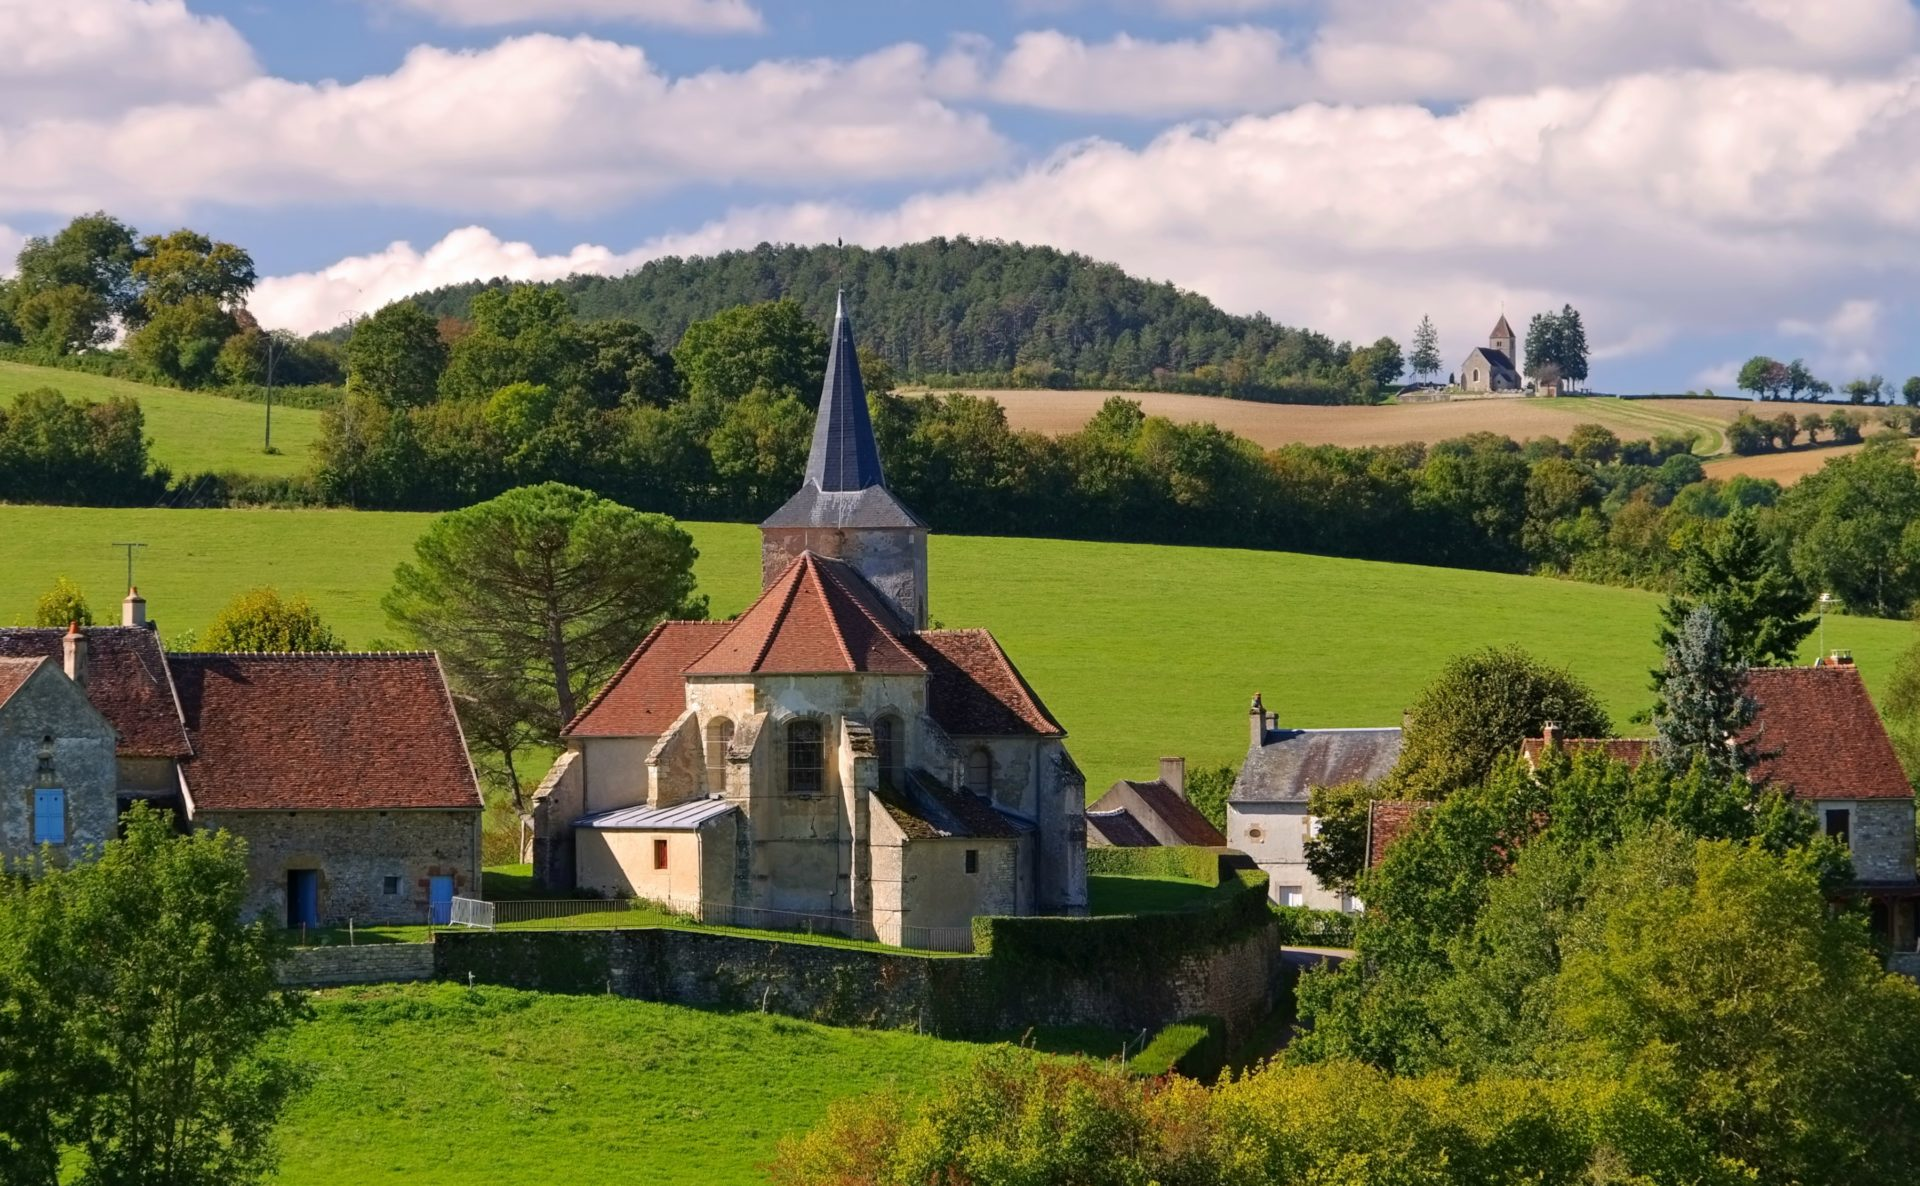 The Morvan is known for the beauty of its nature and villages - and some of the cheapest homes in France